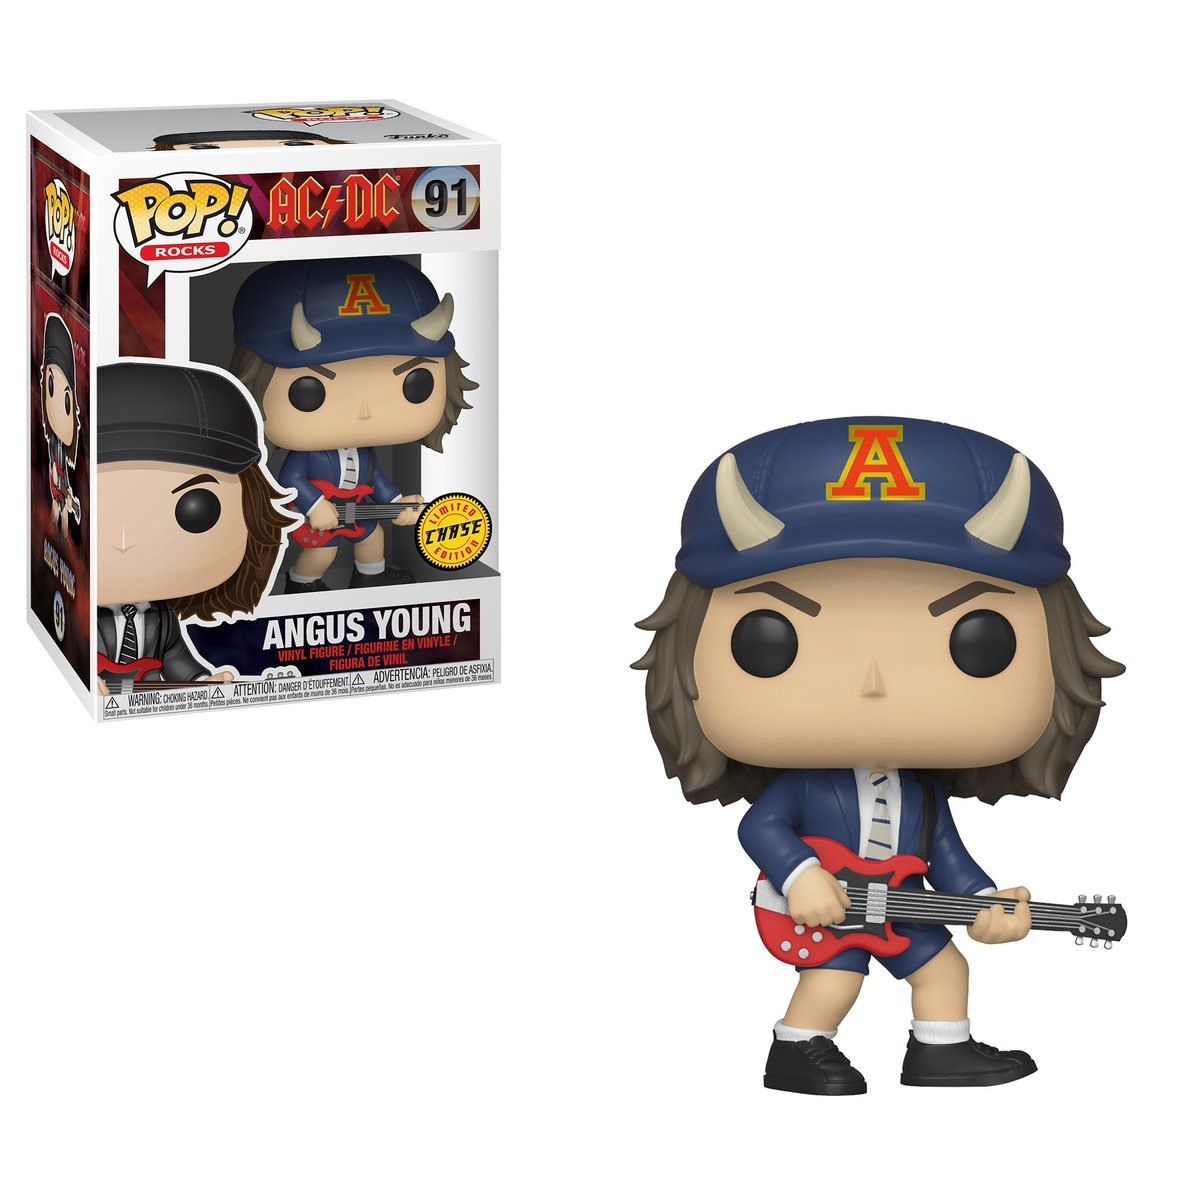 RT & follow @OriginalFunko for the chance to win a CHASE Angus Young Pop!